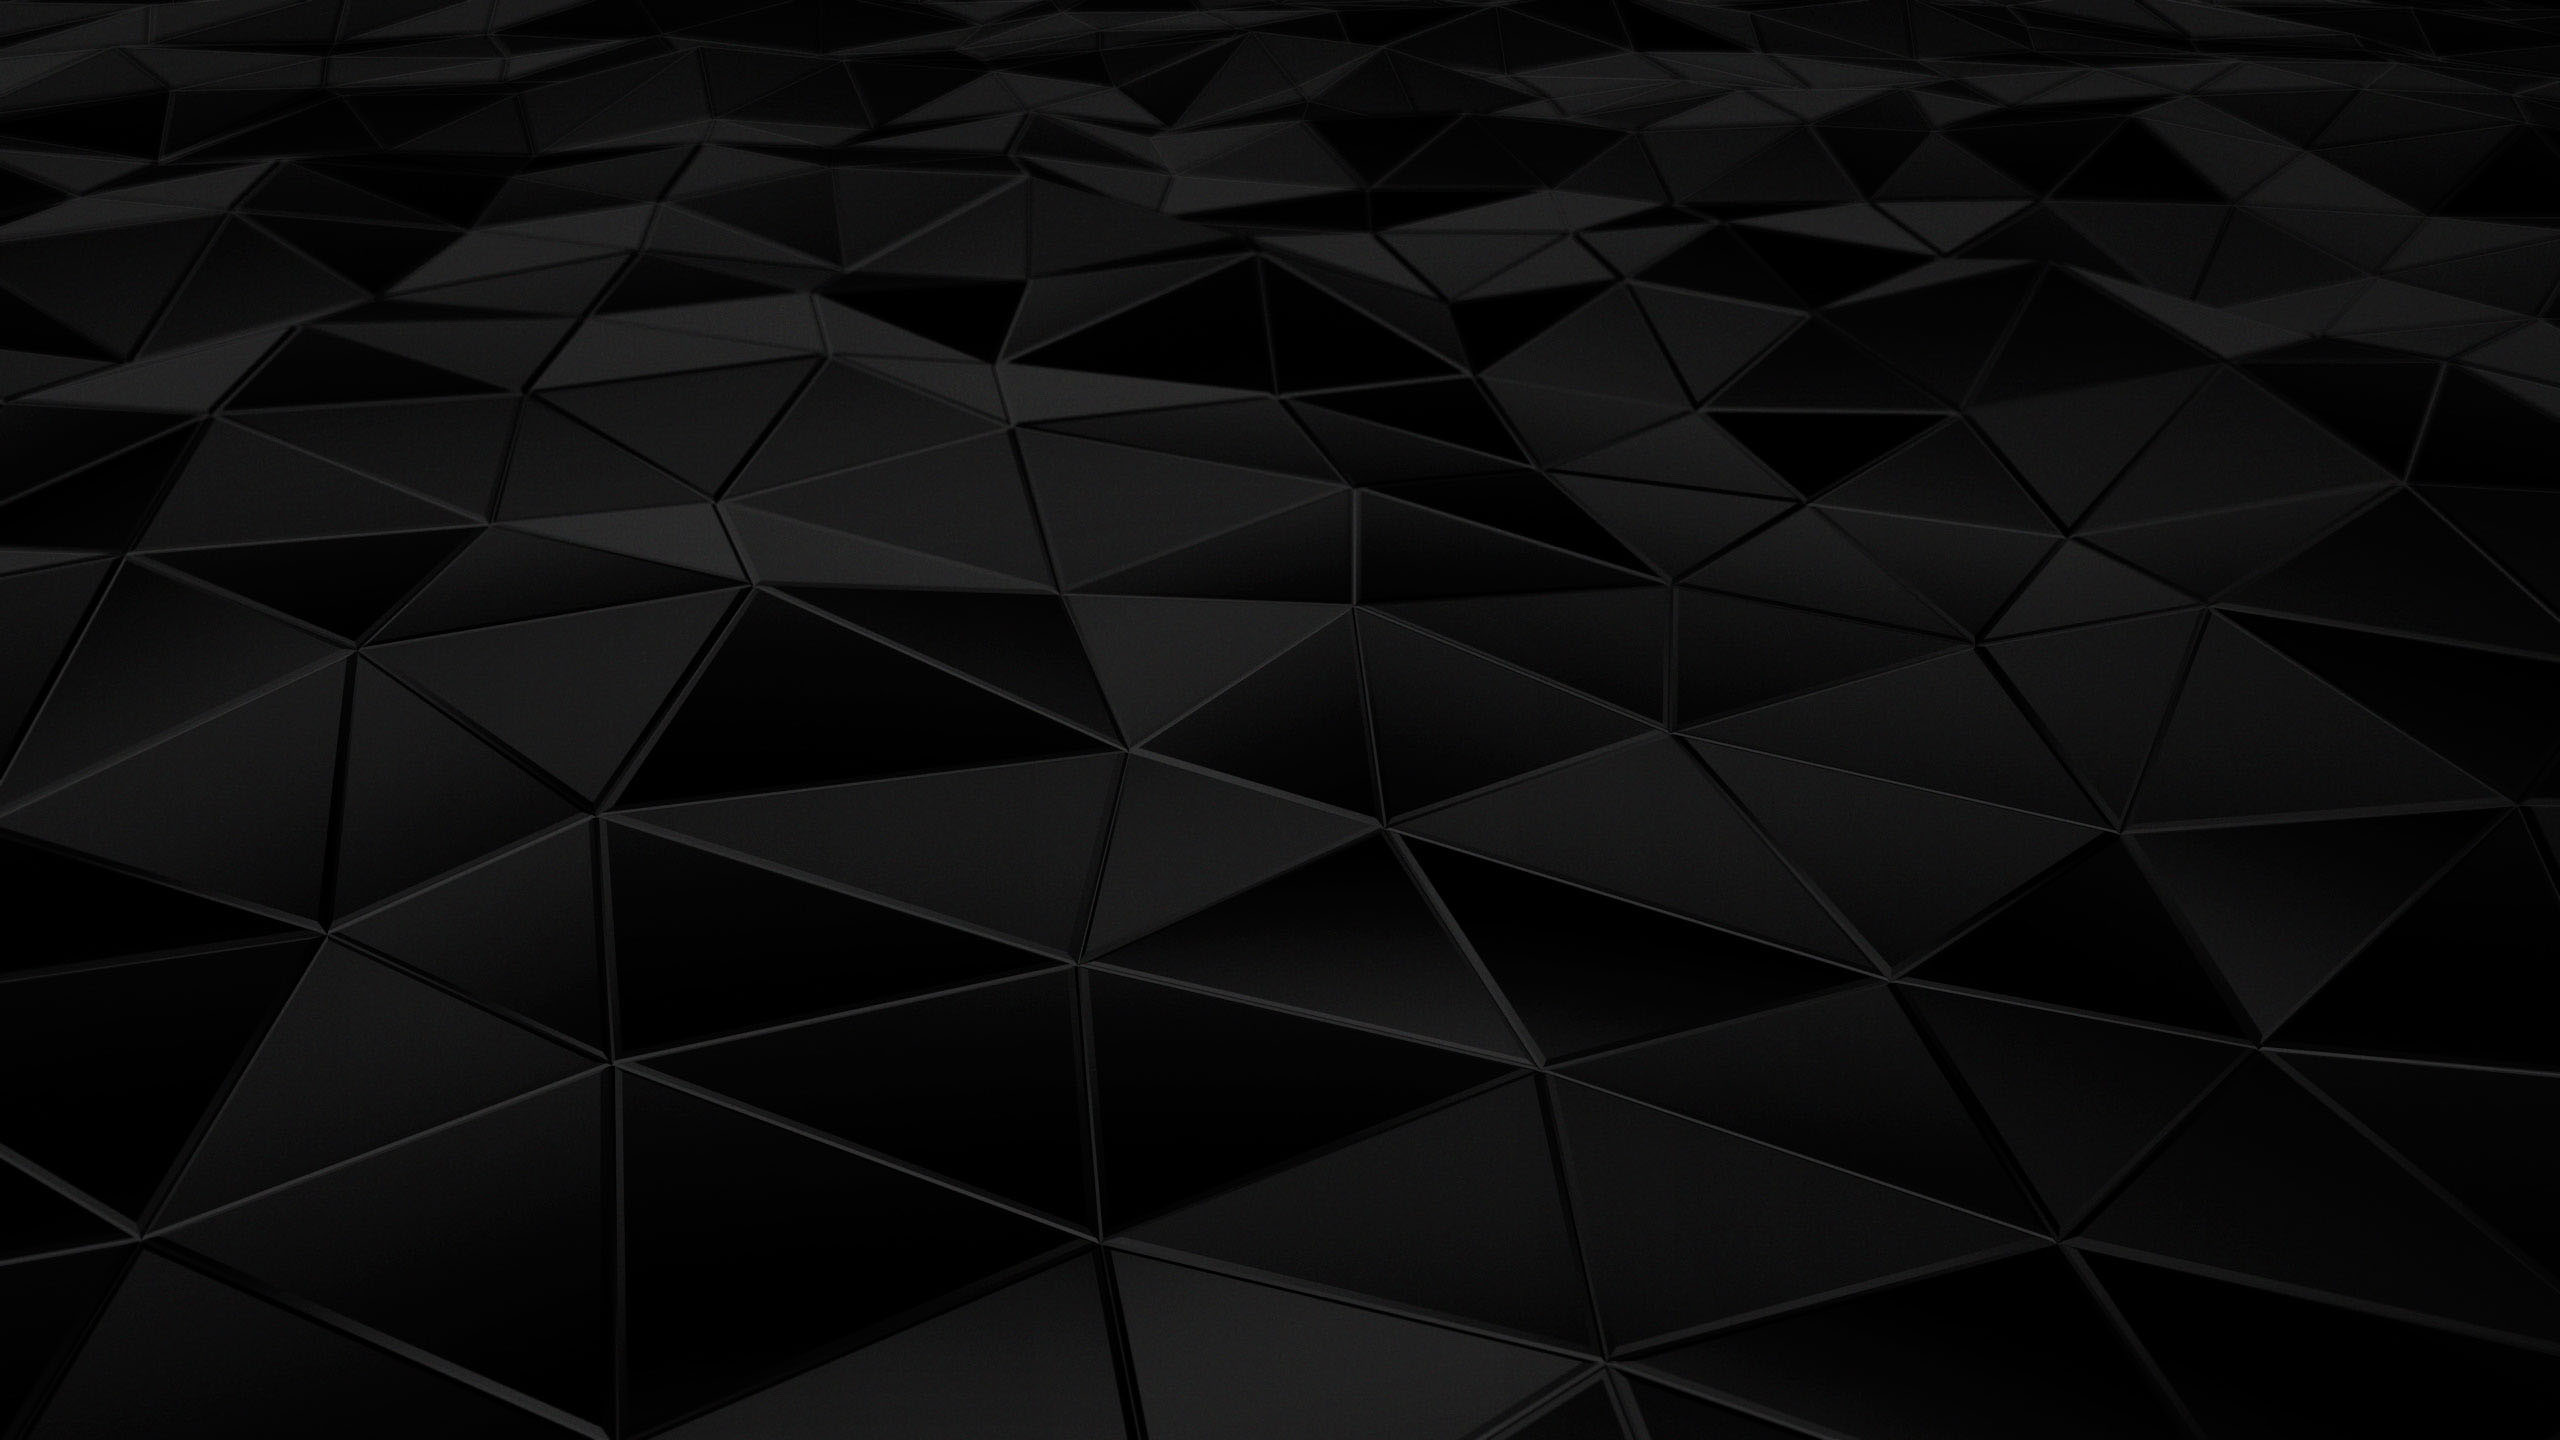 Black Abstract Wallpapers Full Hd As Wallpaper HD